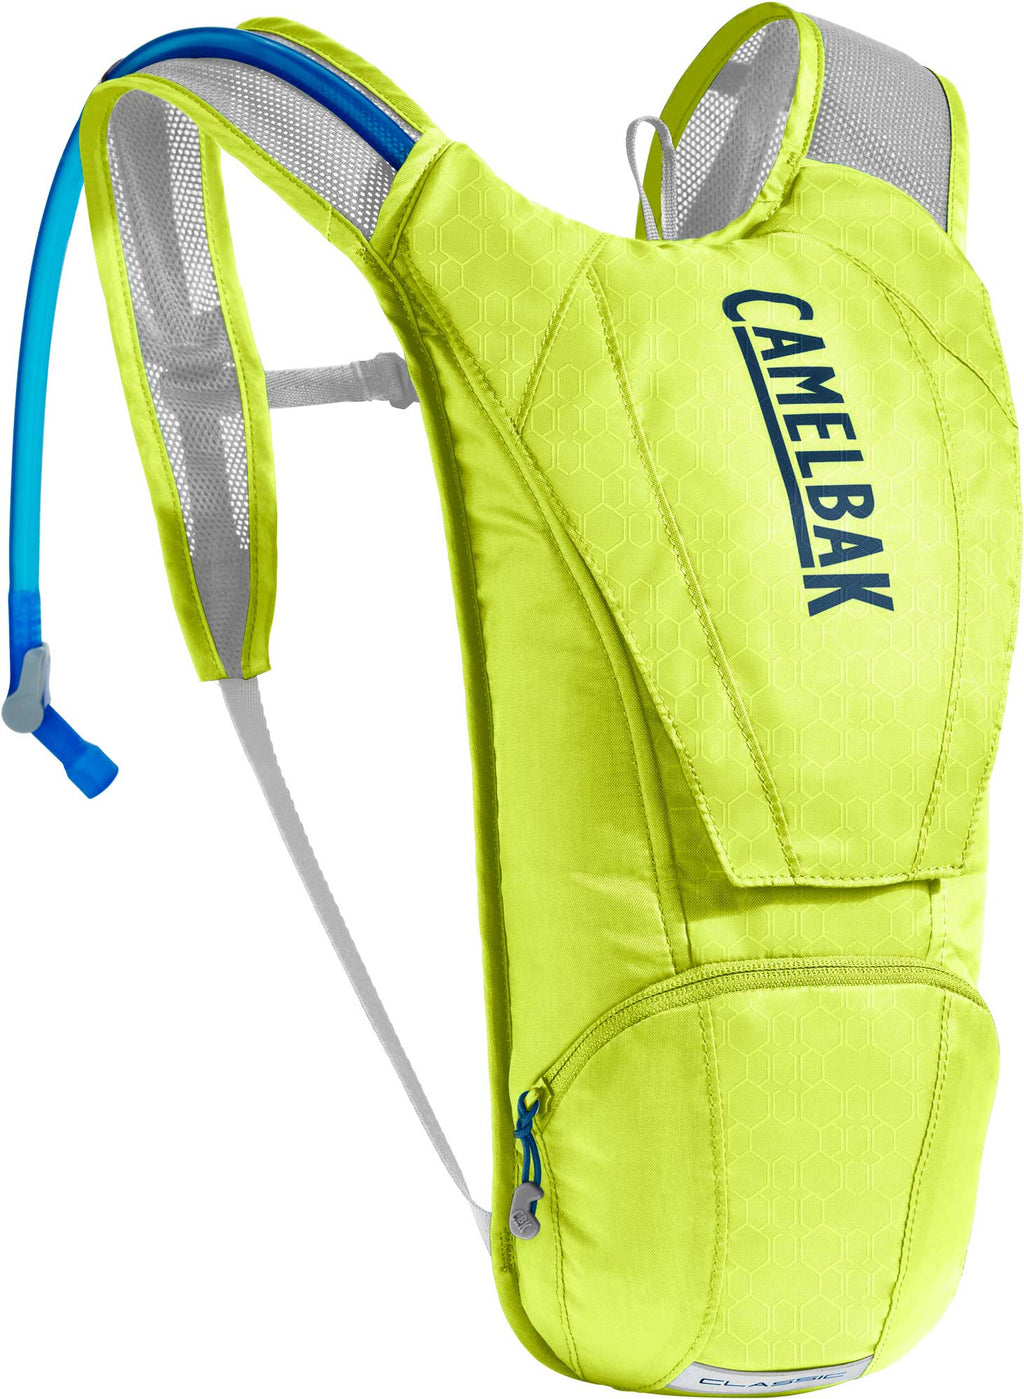 CamelBak Classic 85oz Hydration Cycling Safety Yellow/Navy